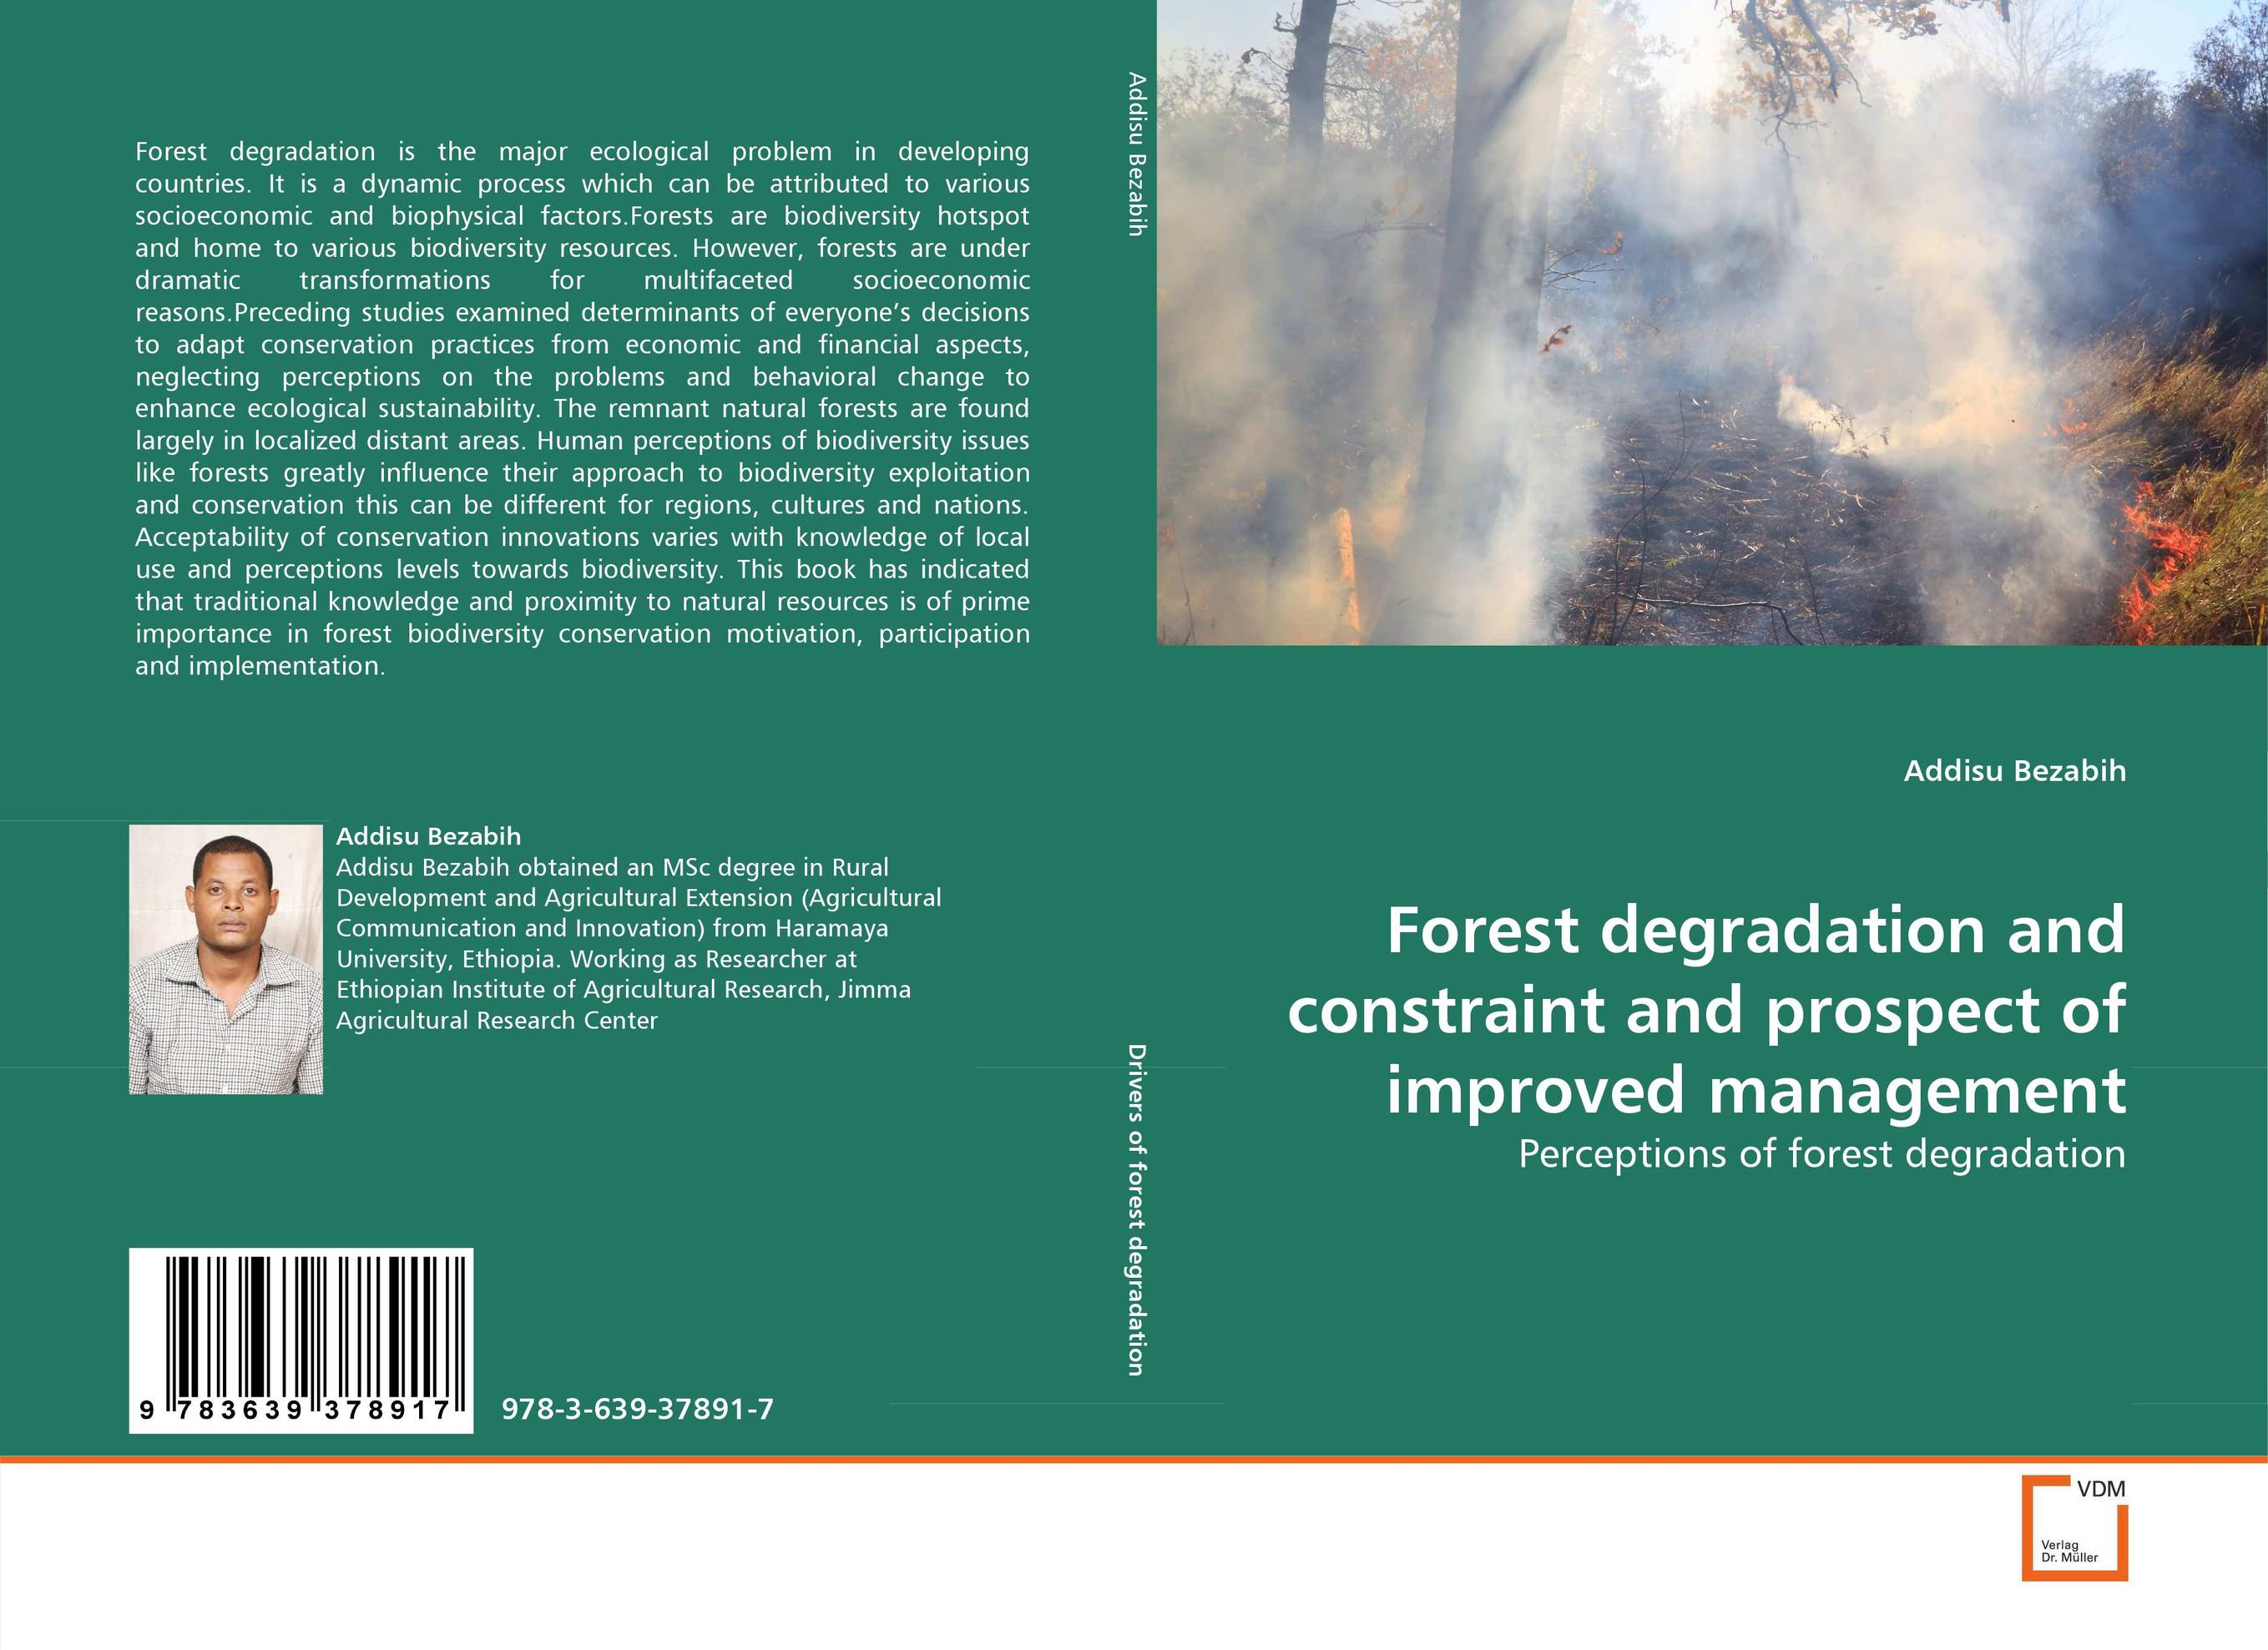 Forest degradation and constraint and prospect of improved management